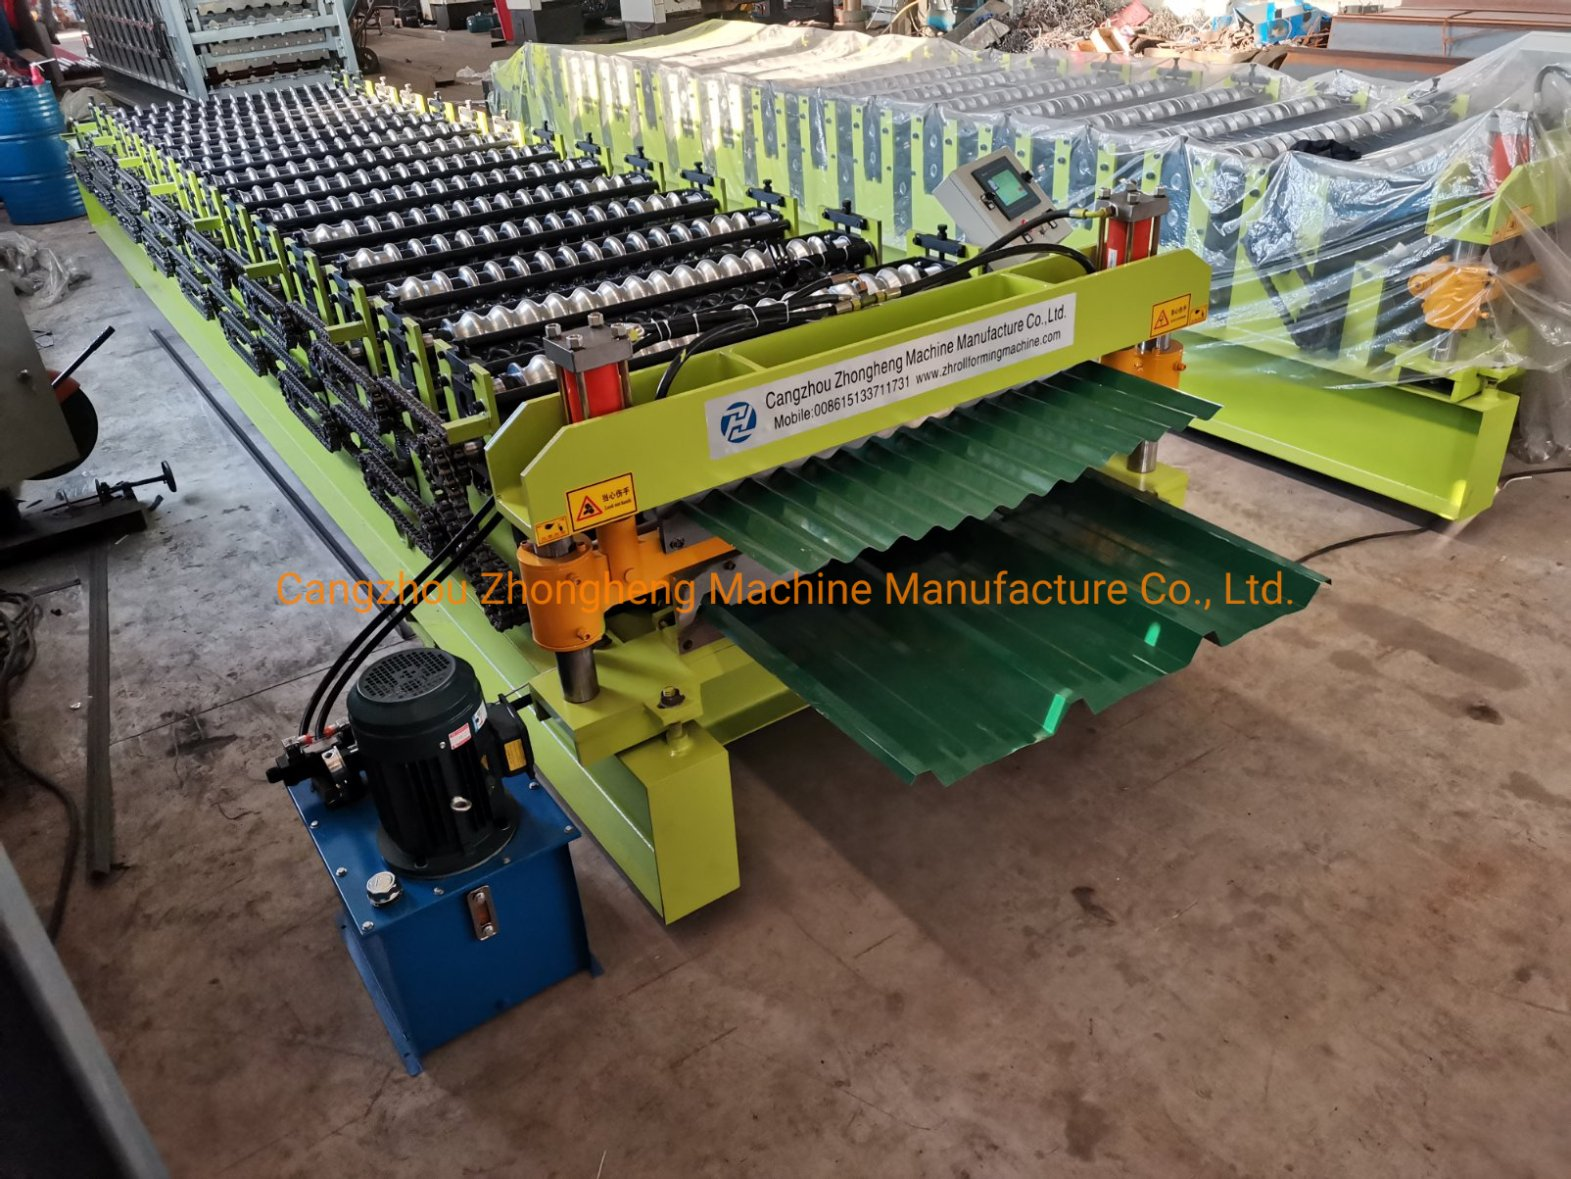 Cangzhou Zhongheng Machine Manufacture Co., Ltd.